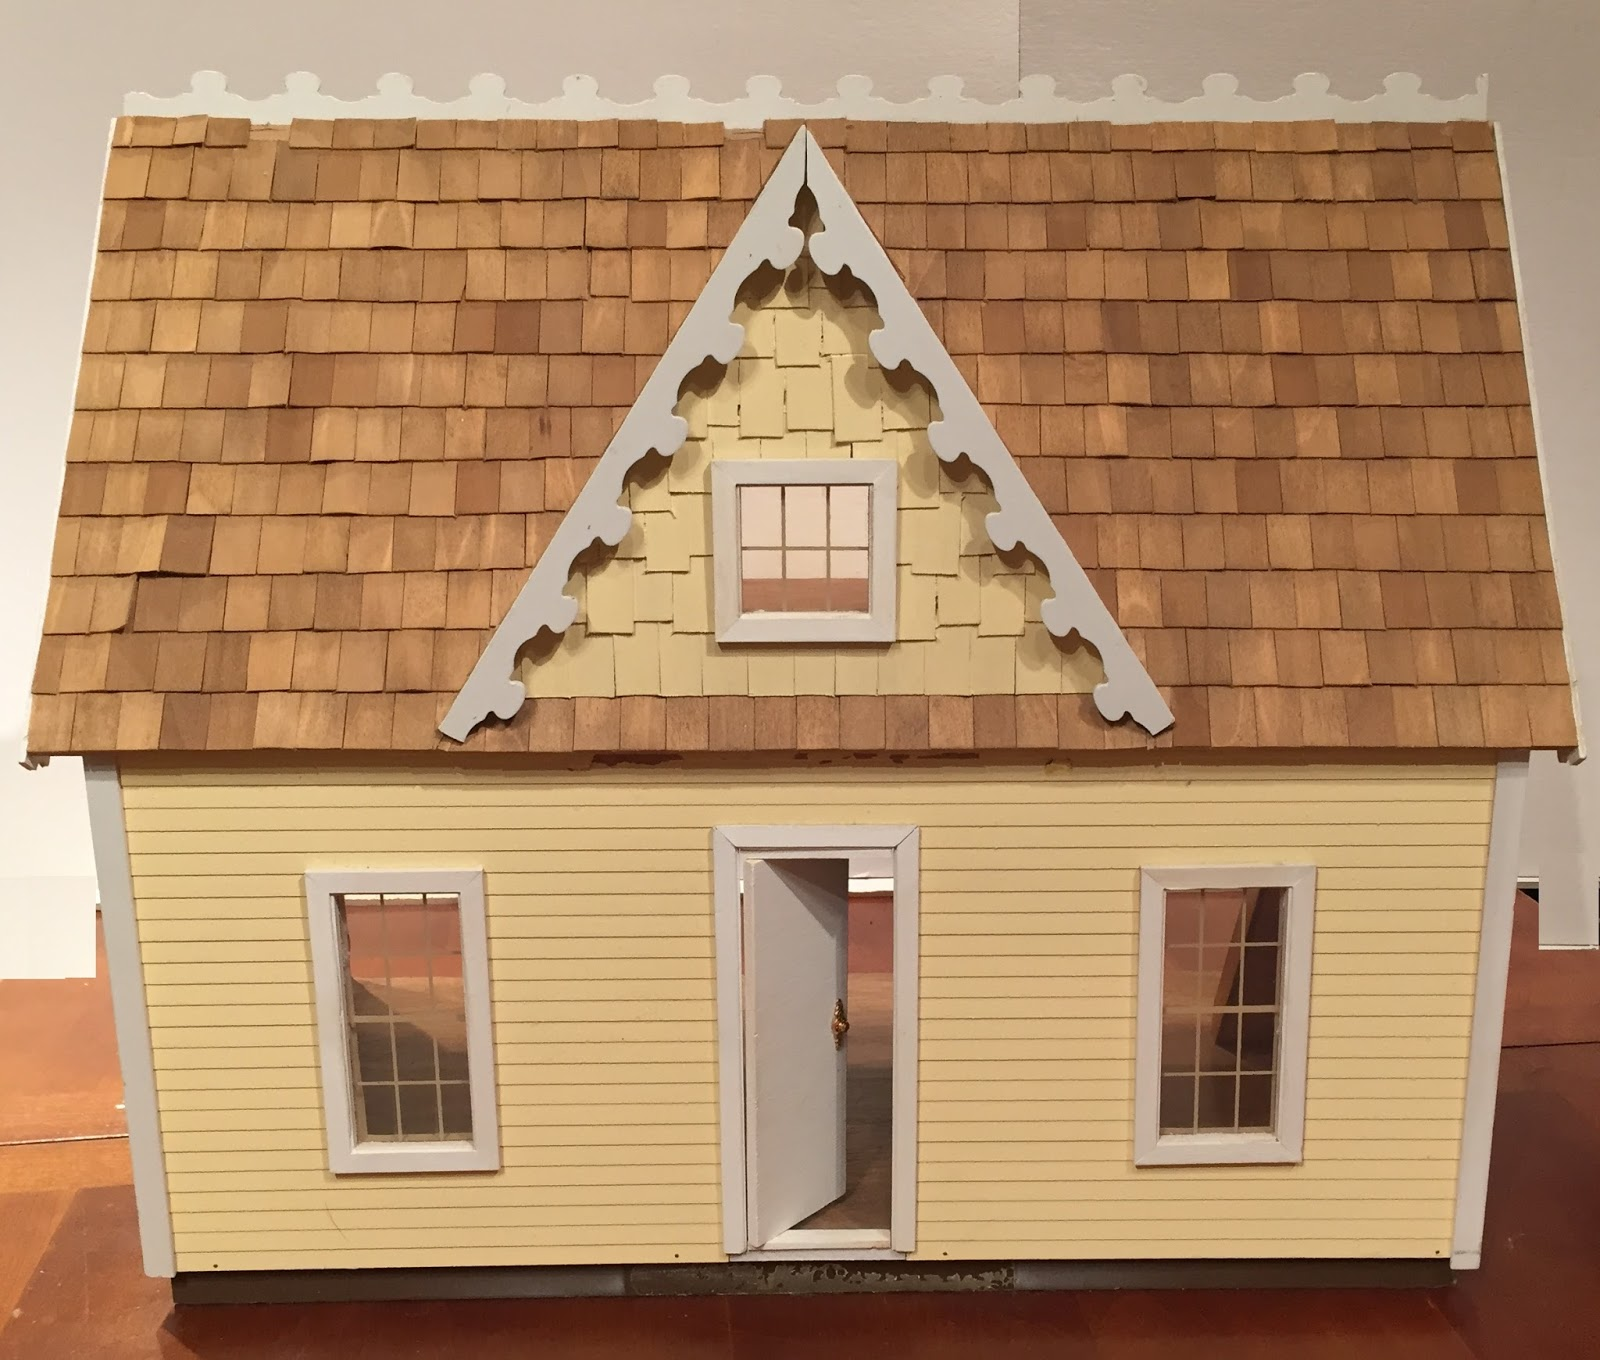 Tulsa tiny stuff victorian cottage jr Victorian cottages kit homes